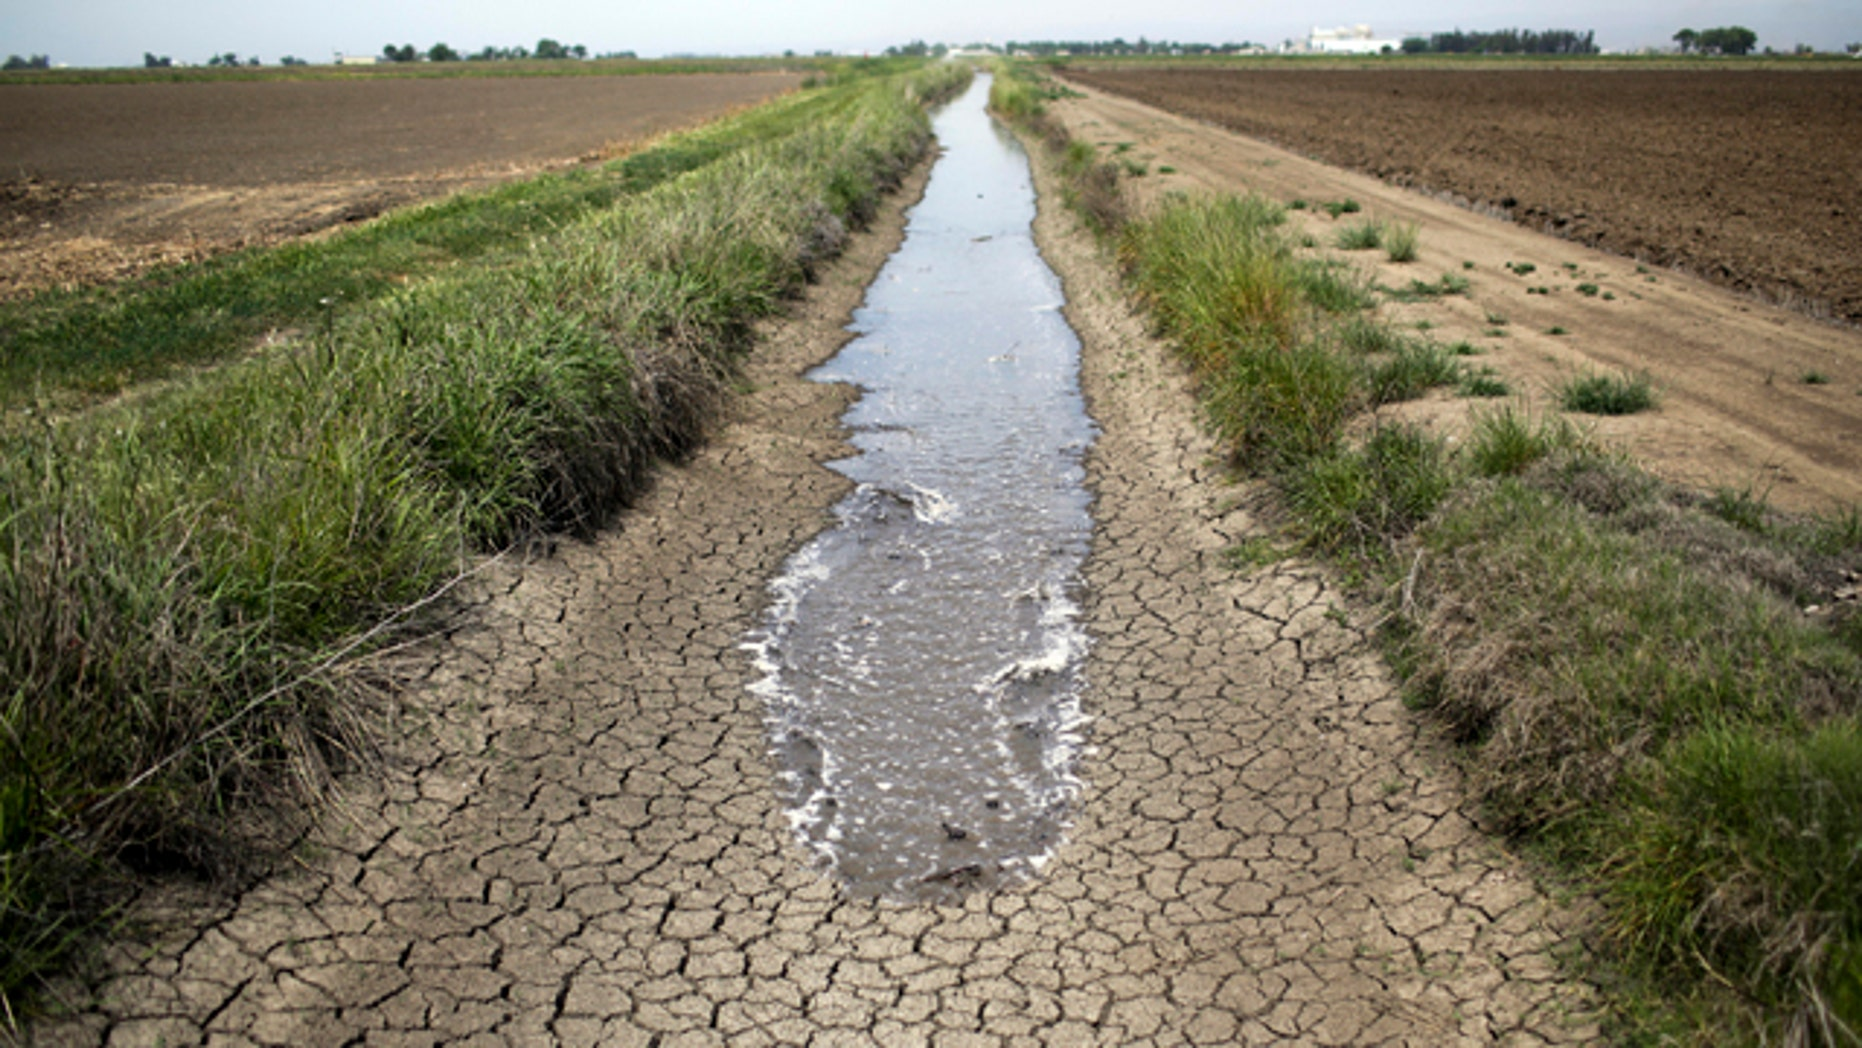 FILE - This May 1, 2014, file photo shows irrigation water running along a dried-up ditch between rice farms in Richvale, Calif. (AP Photo/Jae C. Hong, File)